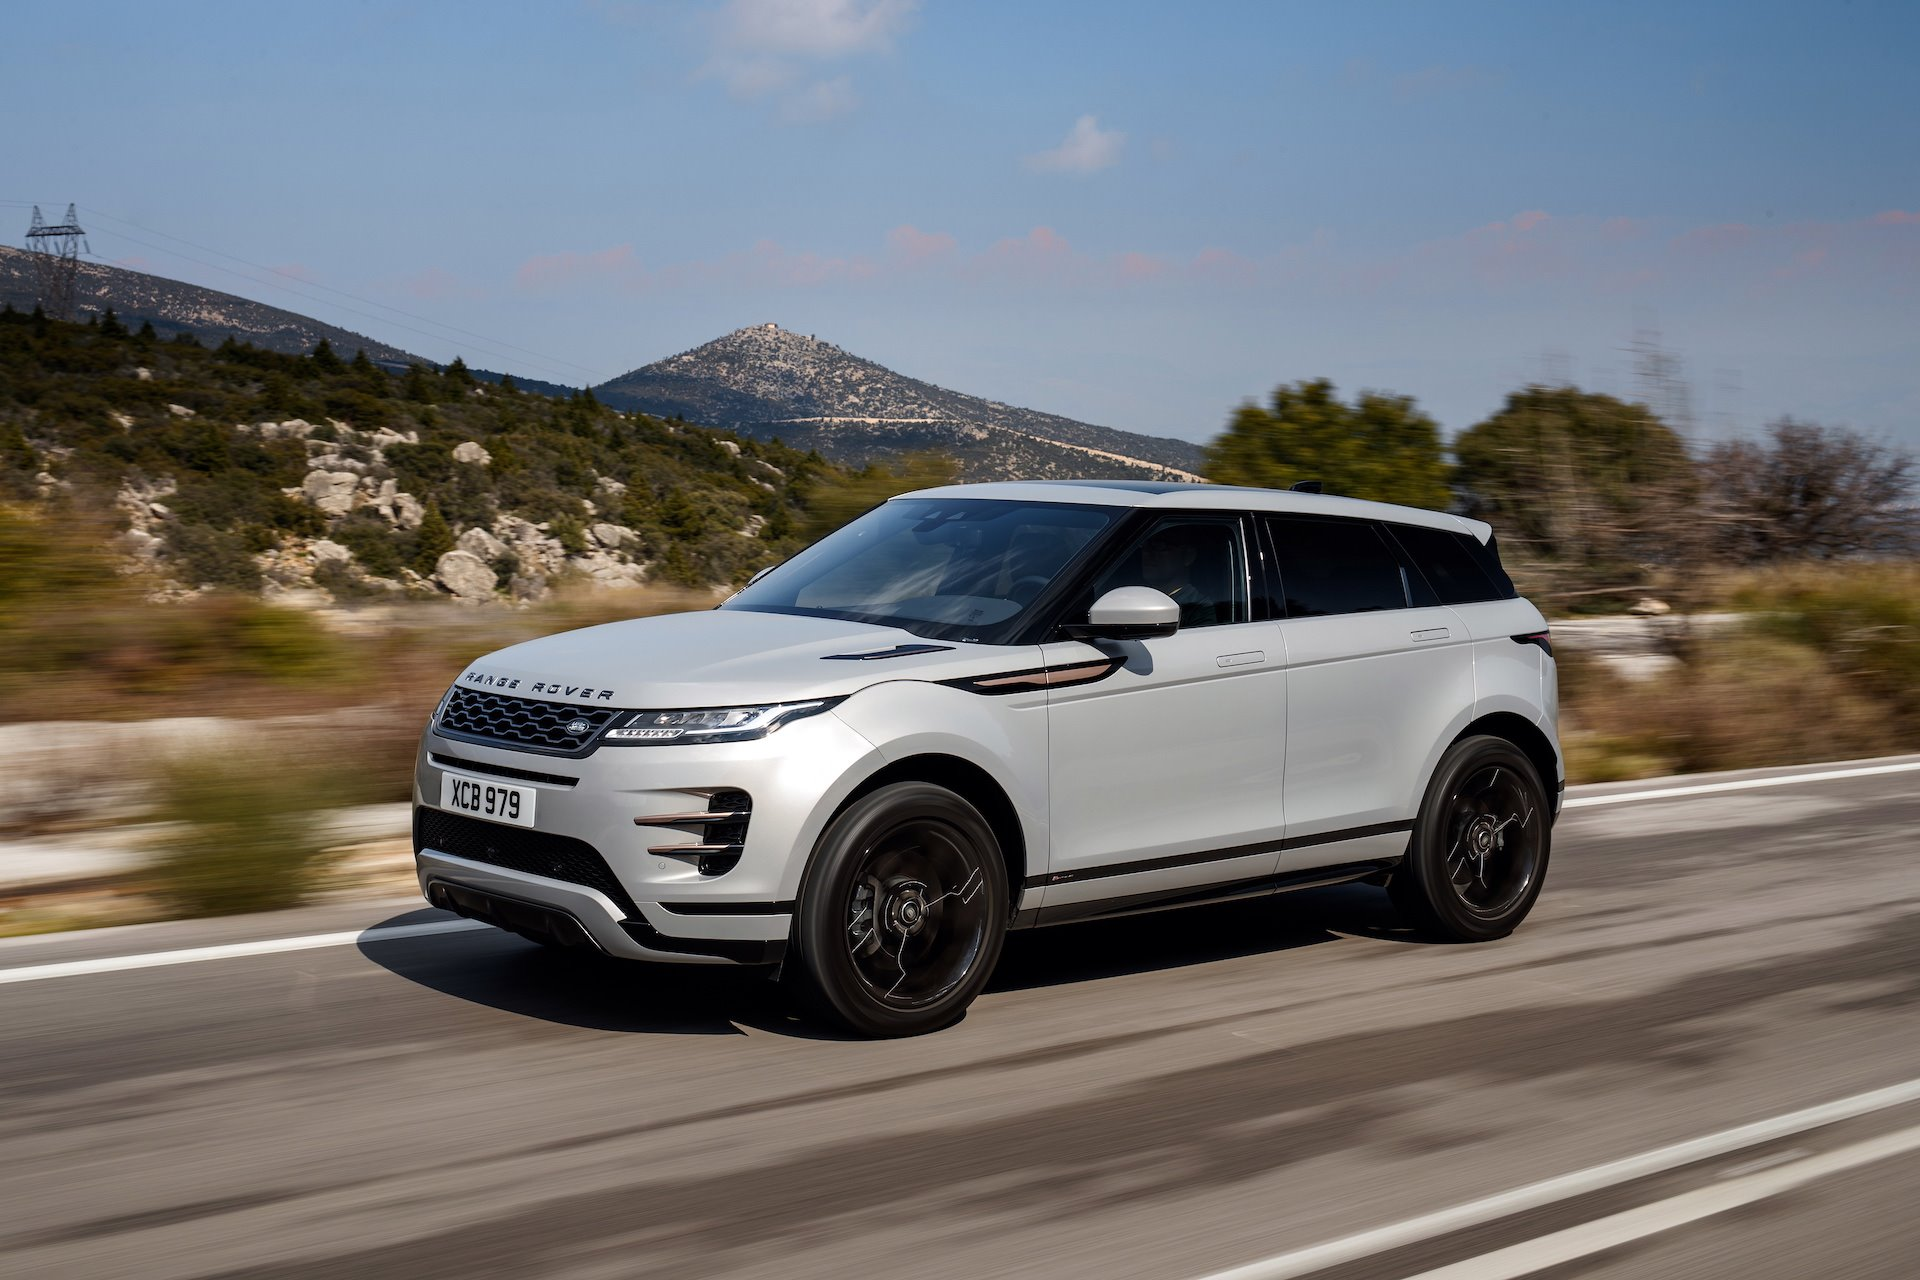 New 2020 Land Rover-Range Rover Evoque R-Dynamic SE Range Rover Evoque R-Dynamic SE for sale $51,150 at M and V Leasing in Brooklyn NY 11223 1